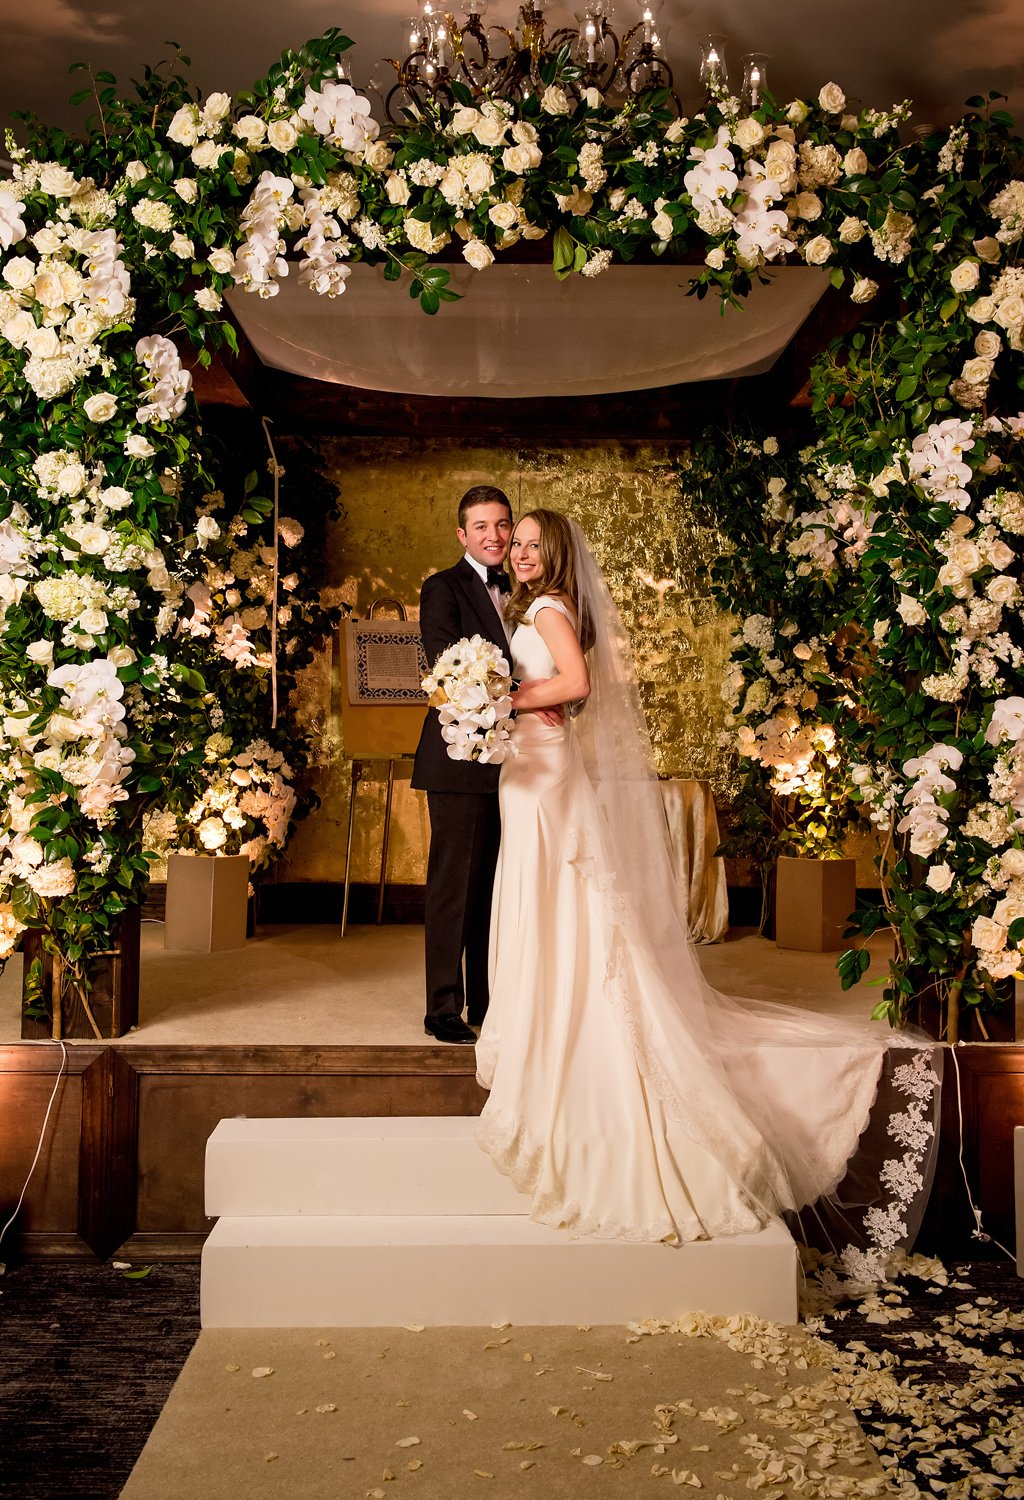 2-19-16-giant-floral-chuppah-ritz-carlton-classic-wedding-7